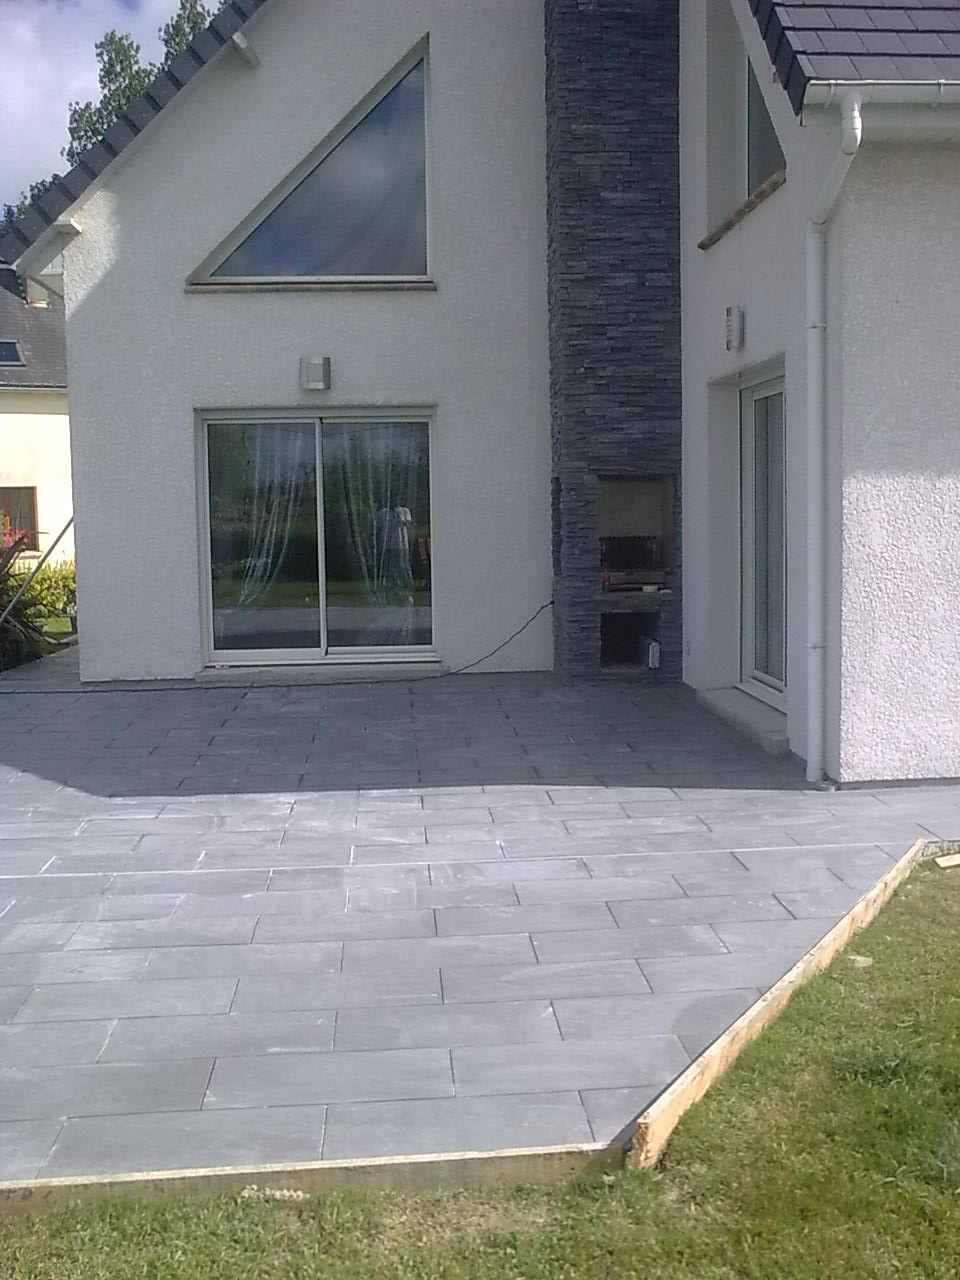 Video refaire joints carrelage devis gratuit travaux for Carrelage orange sol